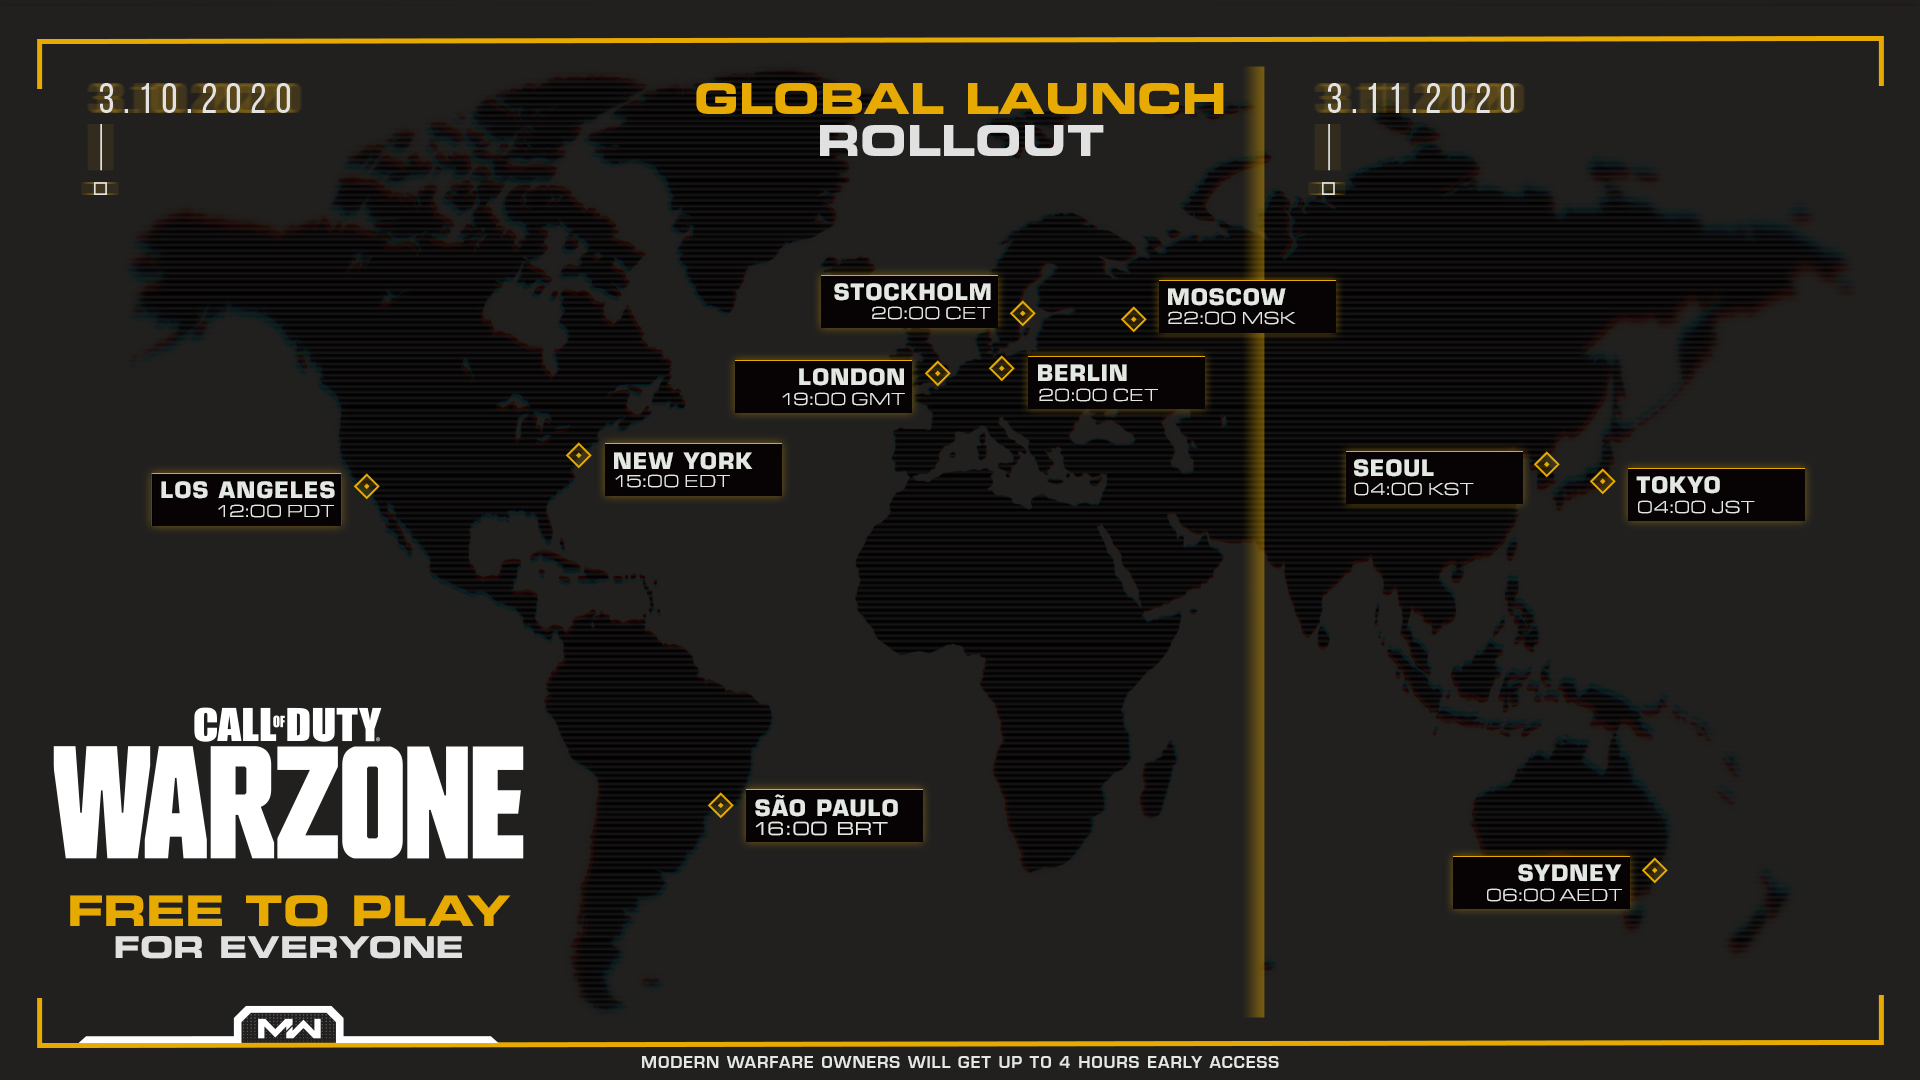 Call of Duty Warzone Launch Day Global Rollout. March 10: Los Angeles 12:00 PDT, New York 15:00 EDT, Sao Paulo 16:00 BRT, London 19:00 GMT, Stockholm 20:00 CET, Berlin 20:00 CET, Moscow 22:00 MSK. March 11: Singapore 03:00 SGT, Seoul 04:00 KST, Sydney 06:00 AEDT